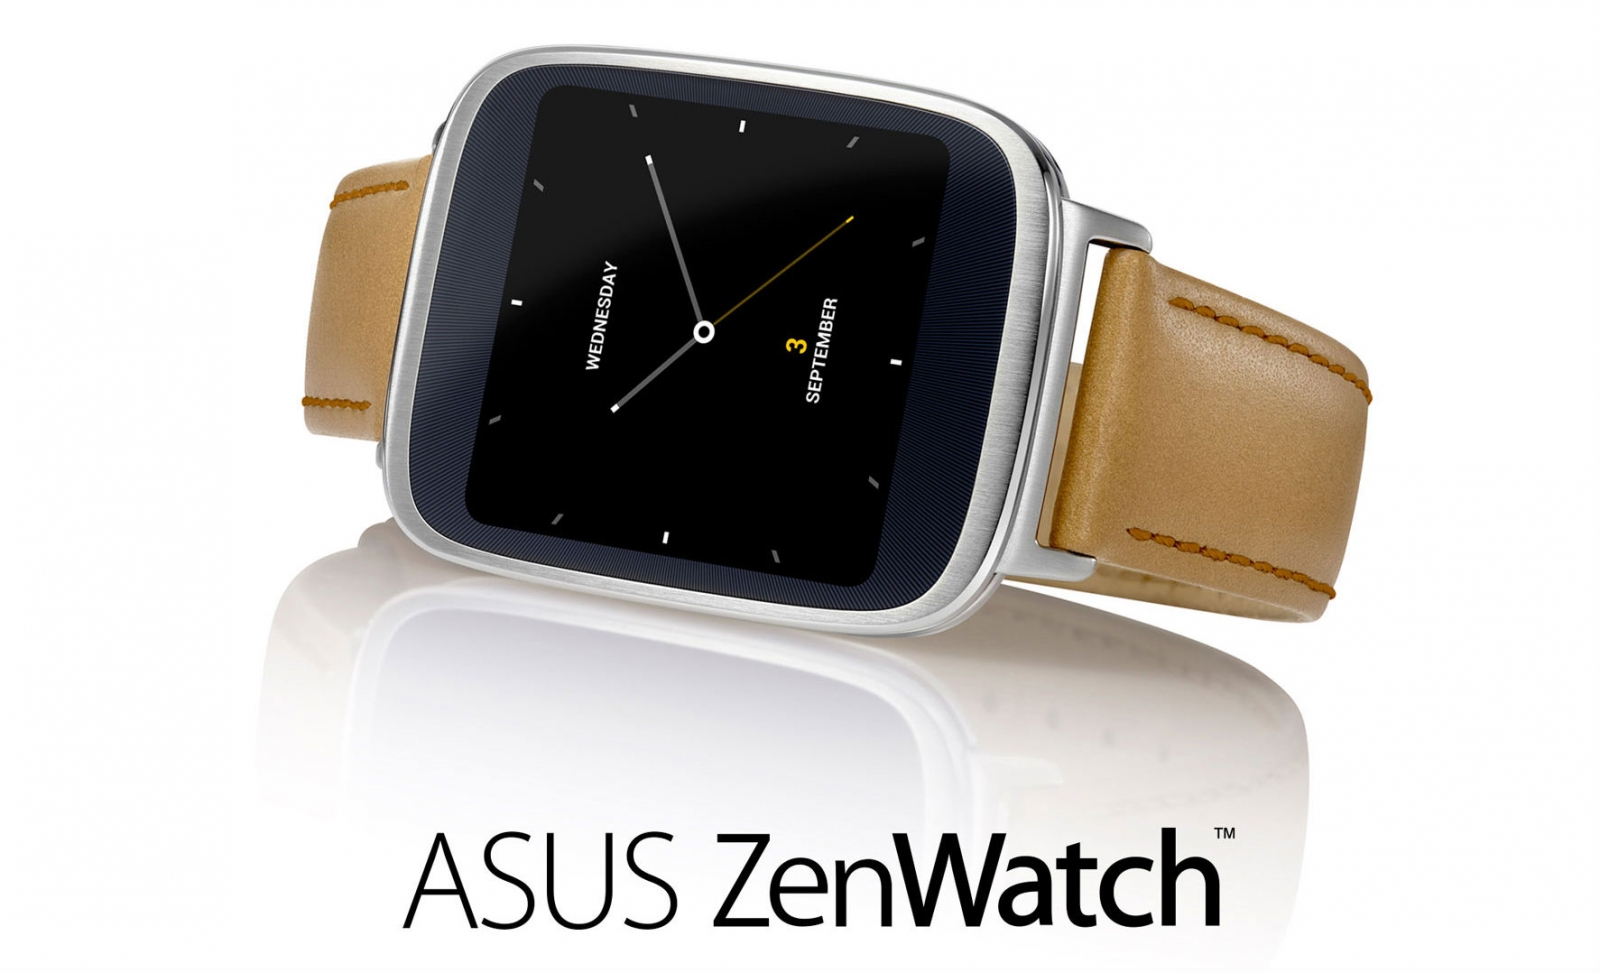 Advanced Asus Zenwatch featuring SIM-card slot and fitness monitors confirmed to launch in 2015